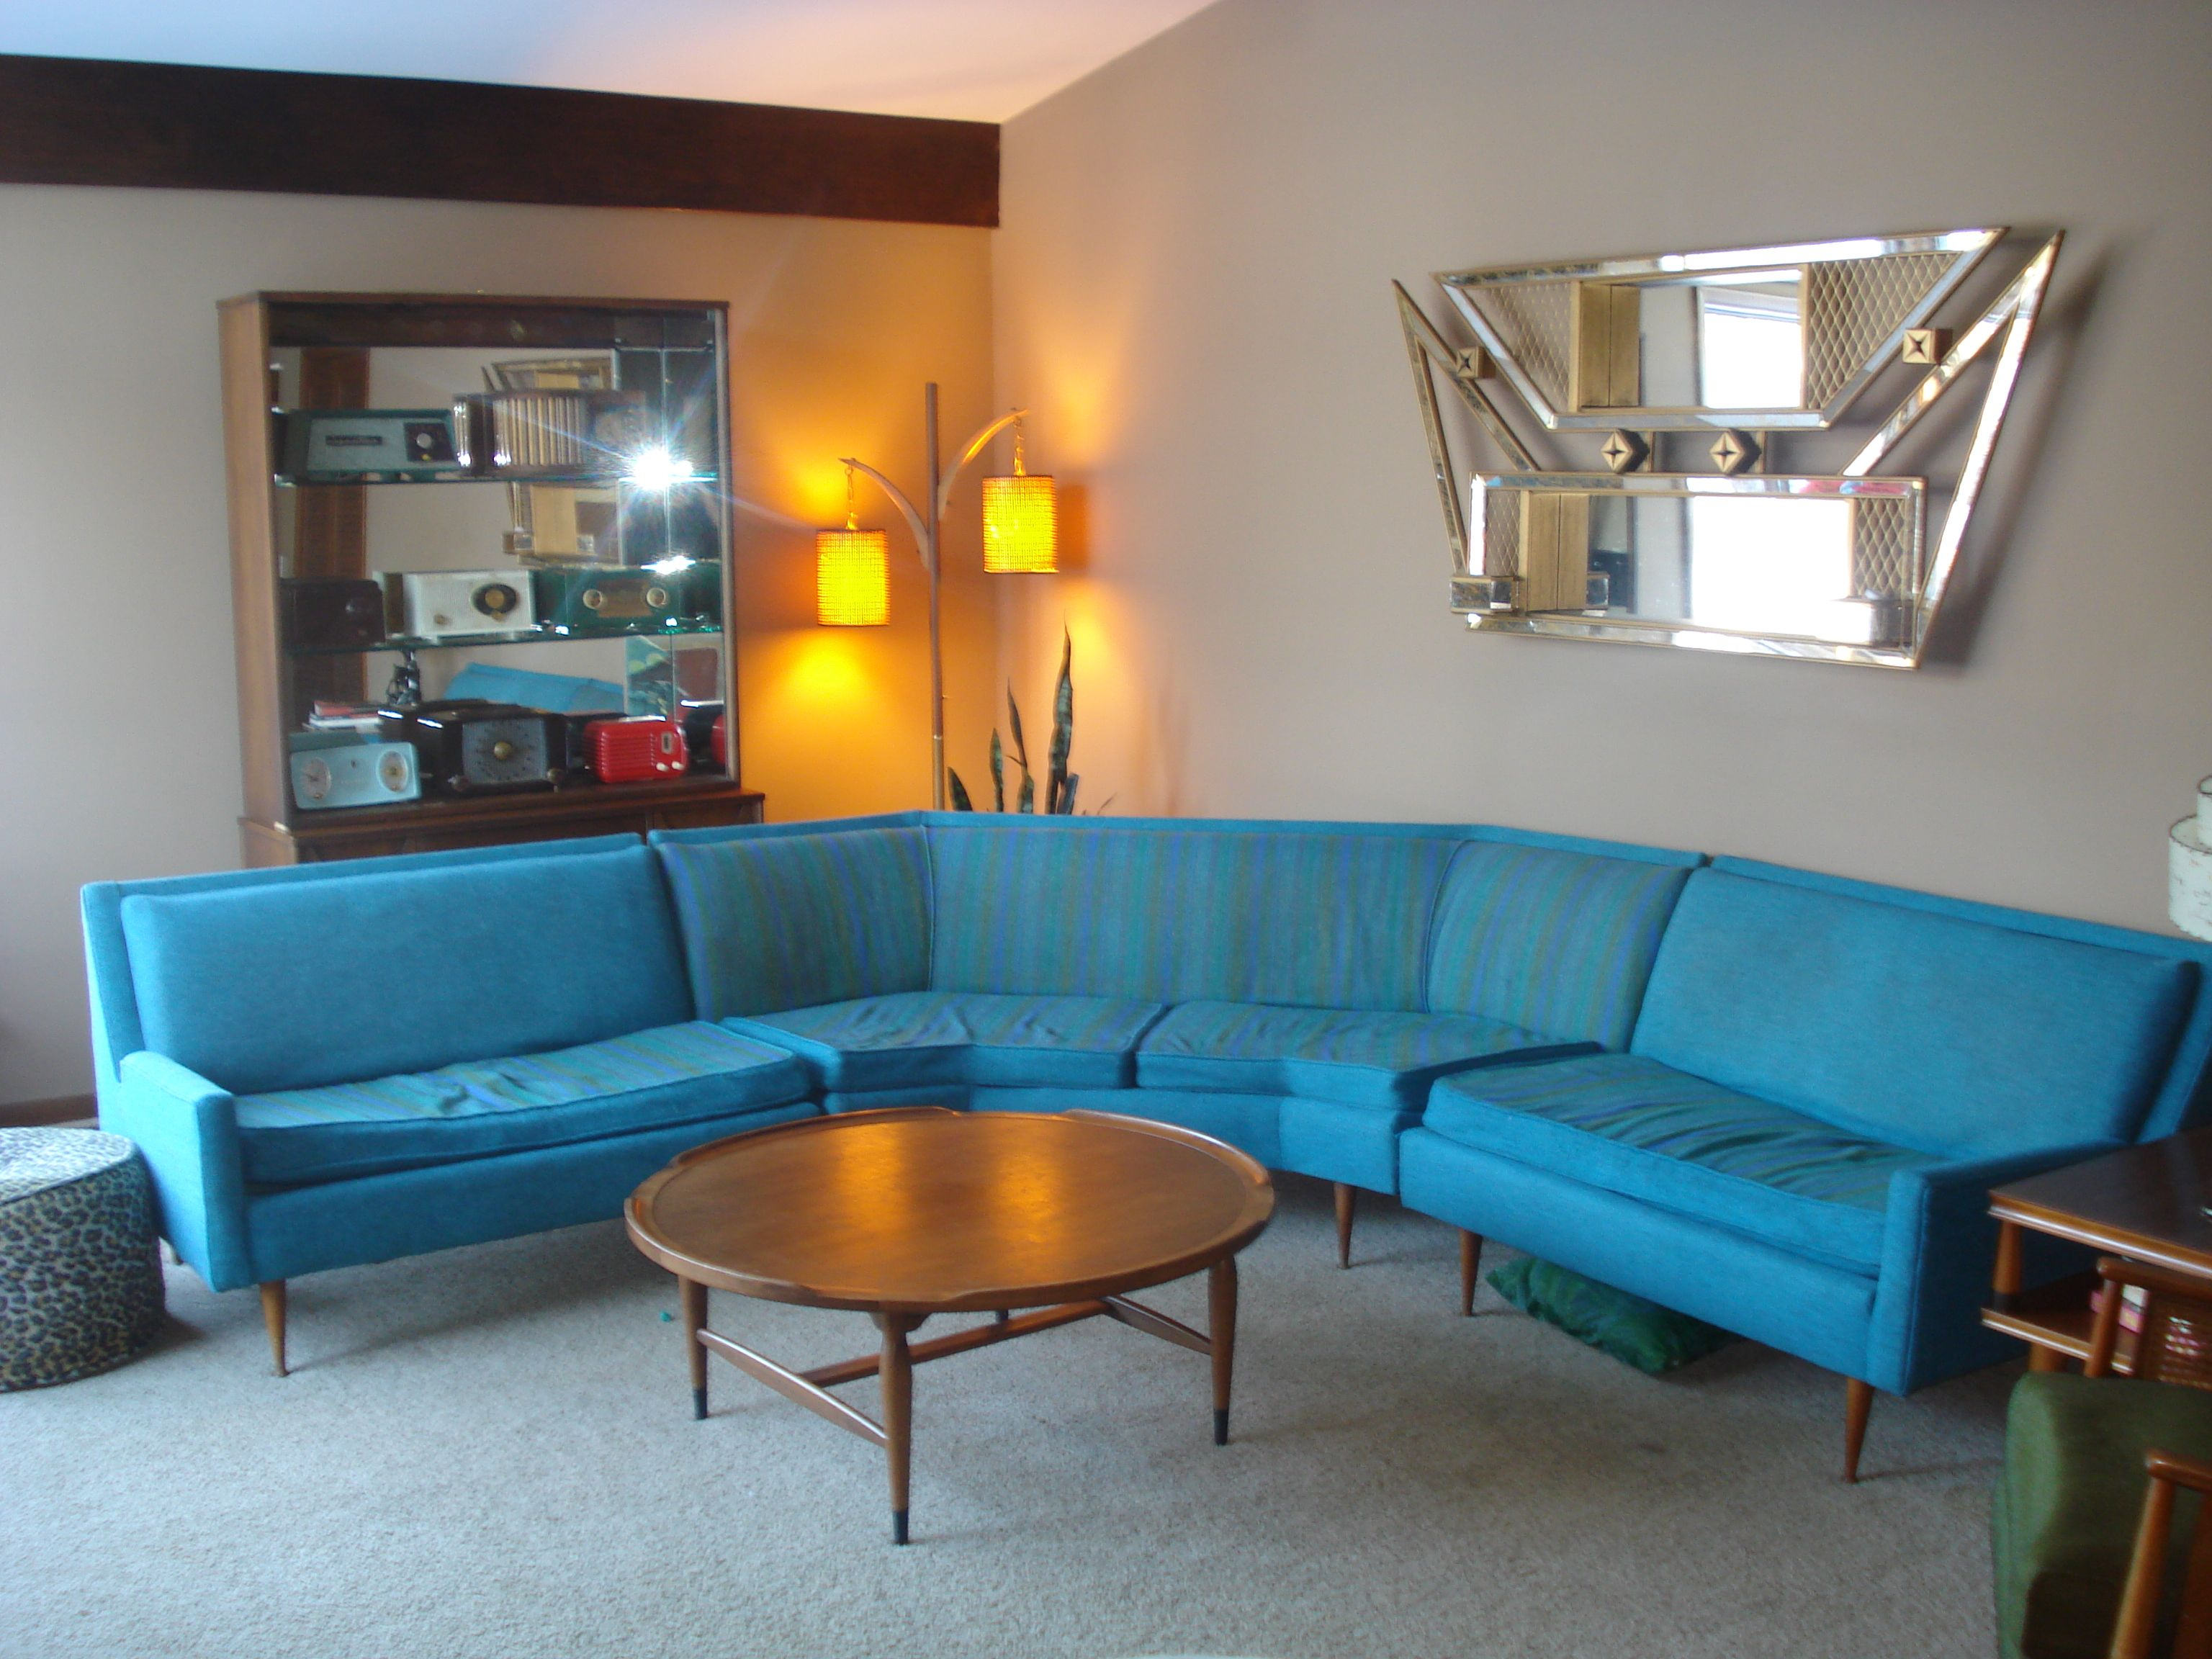 surprising 1960s sitcom living room | Couches for 1940s, 1950s or 1960s living rooms - Upload ...